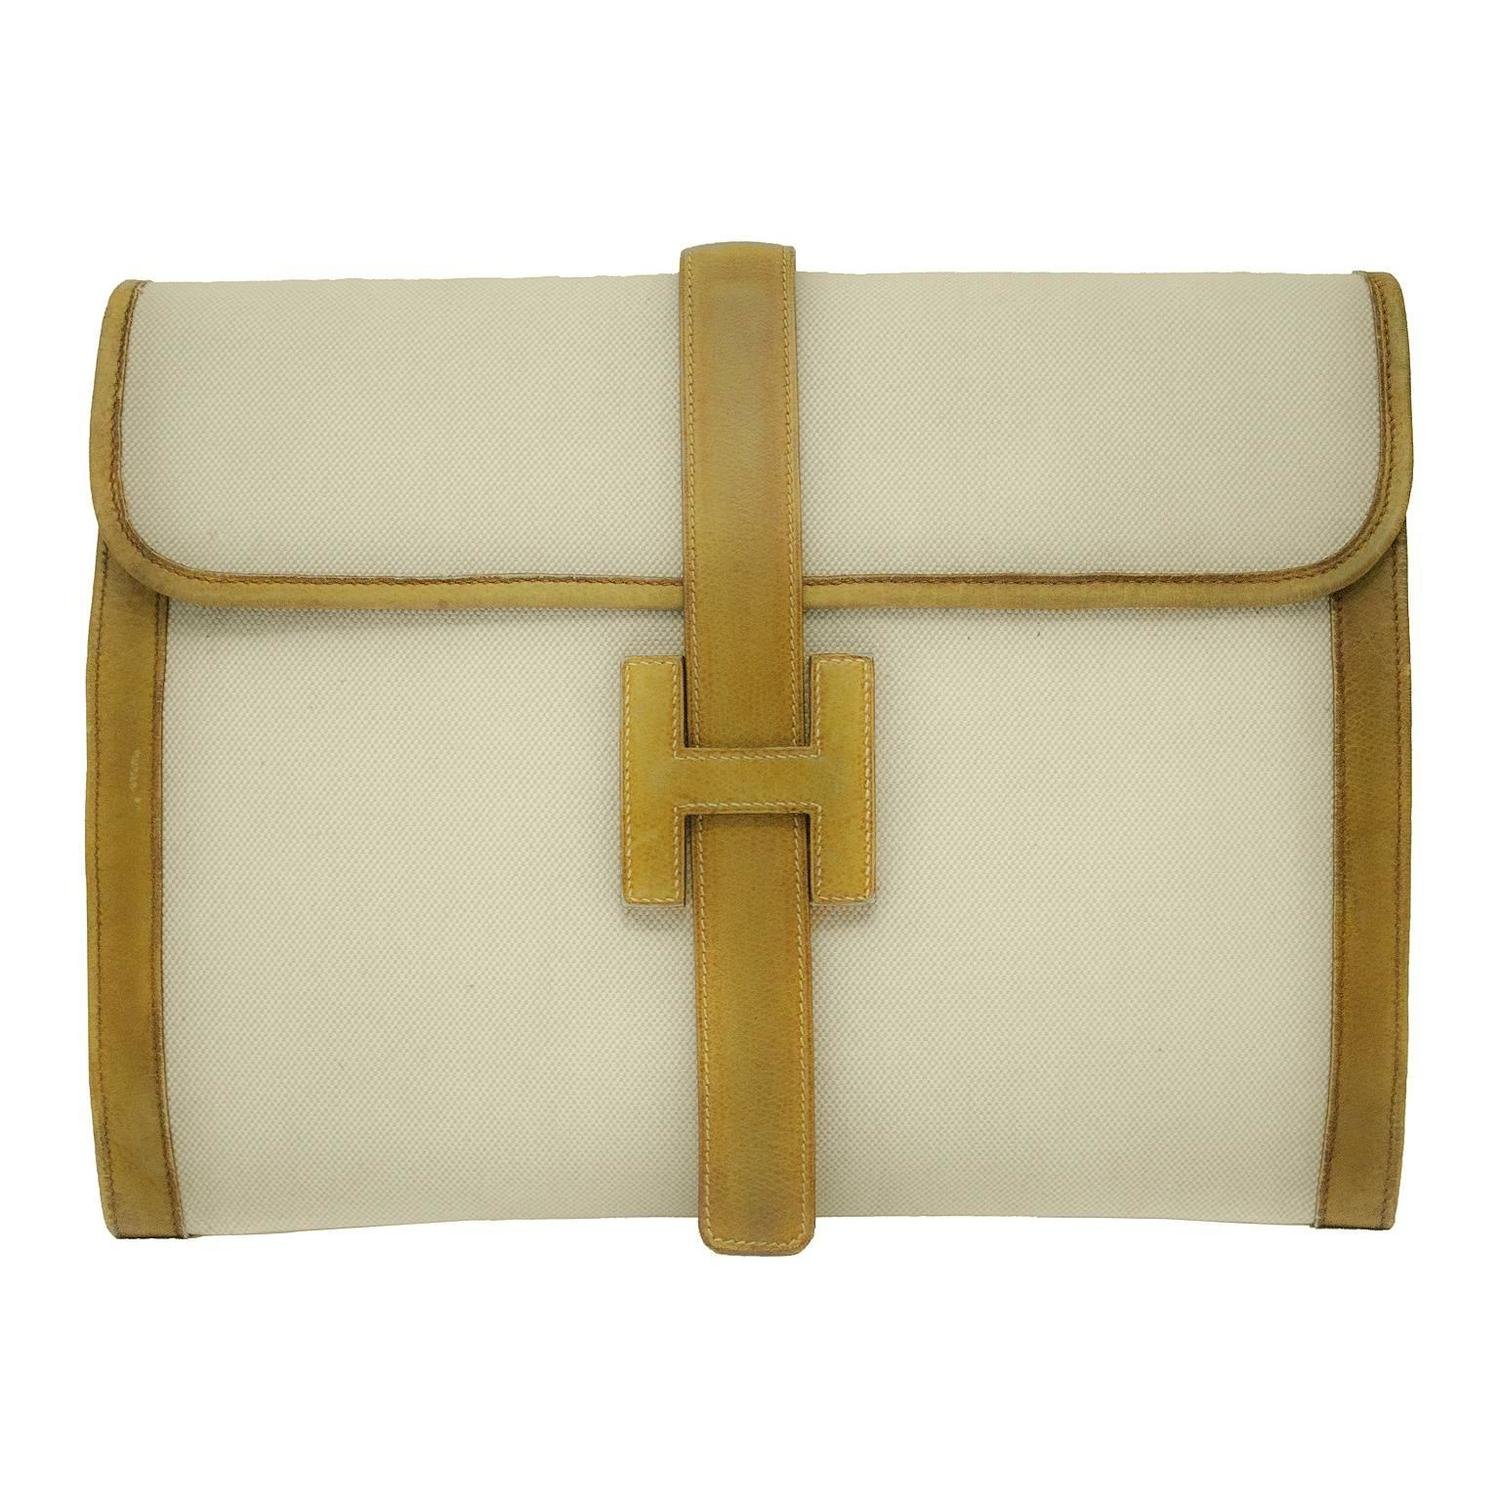 1970\u0026#39;s Hermes Beige Jige Clutch at 1stdibs